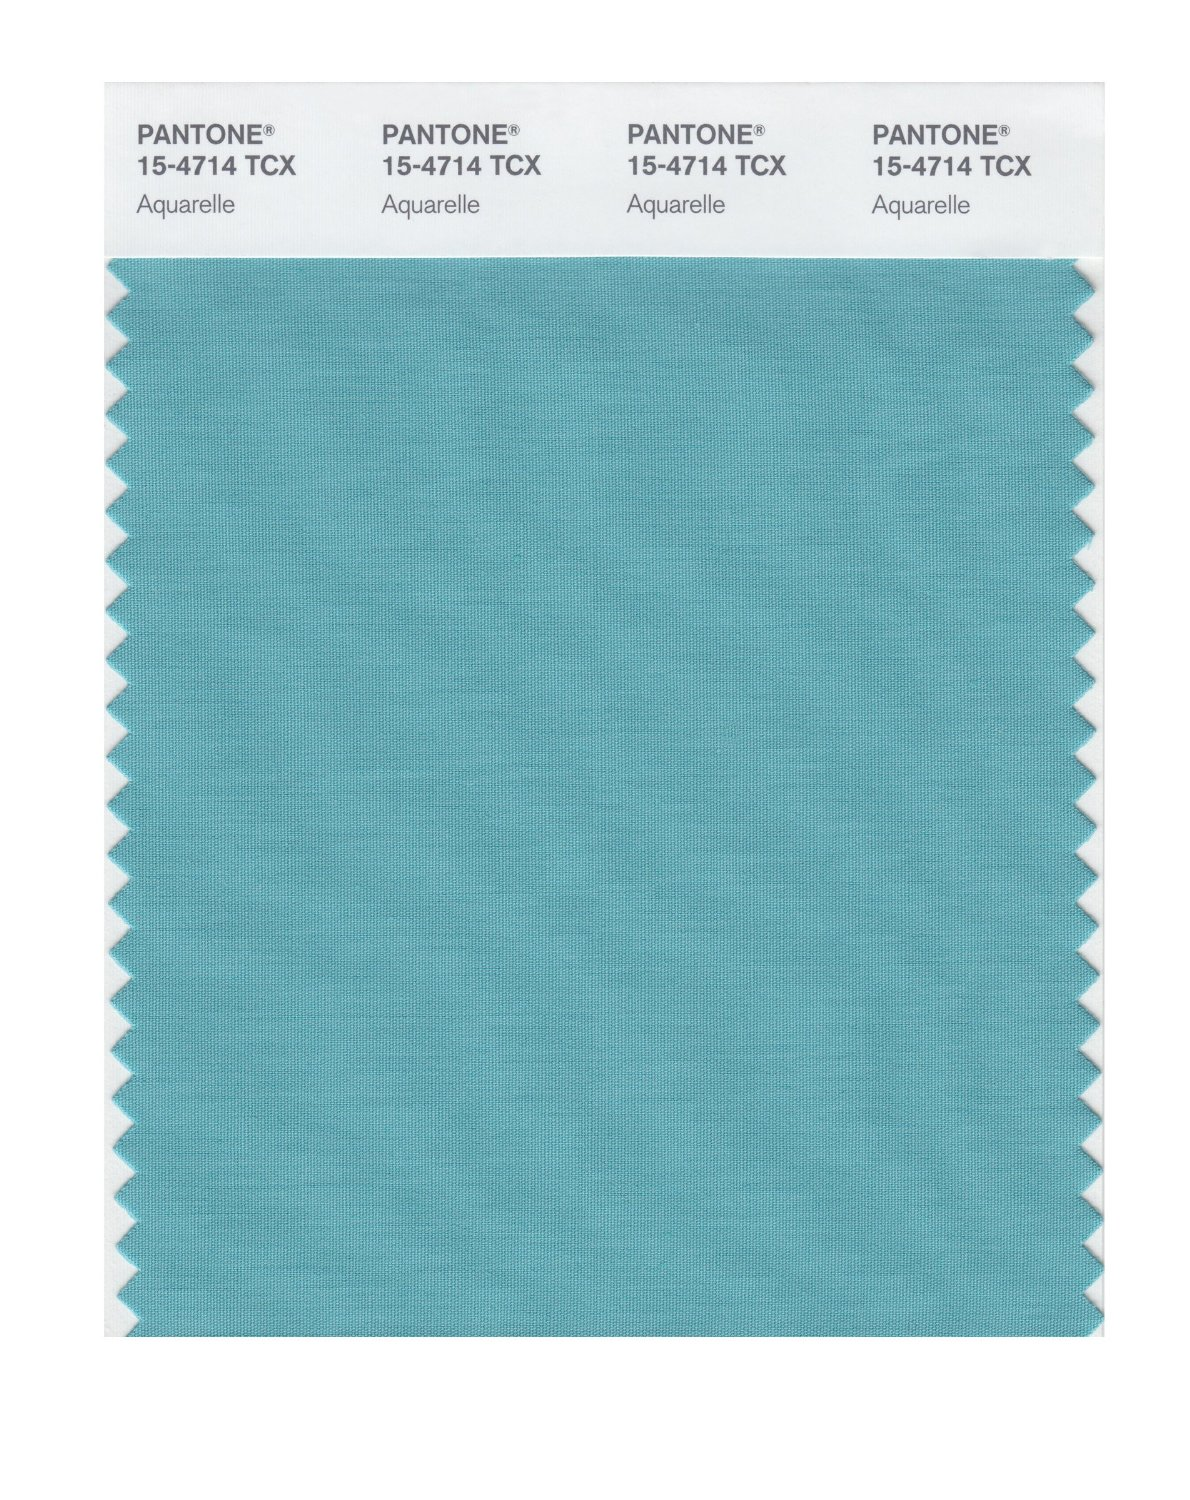 Pantone Smart Swatch 15-4714 Aquarelle